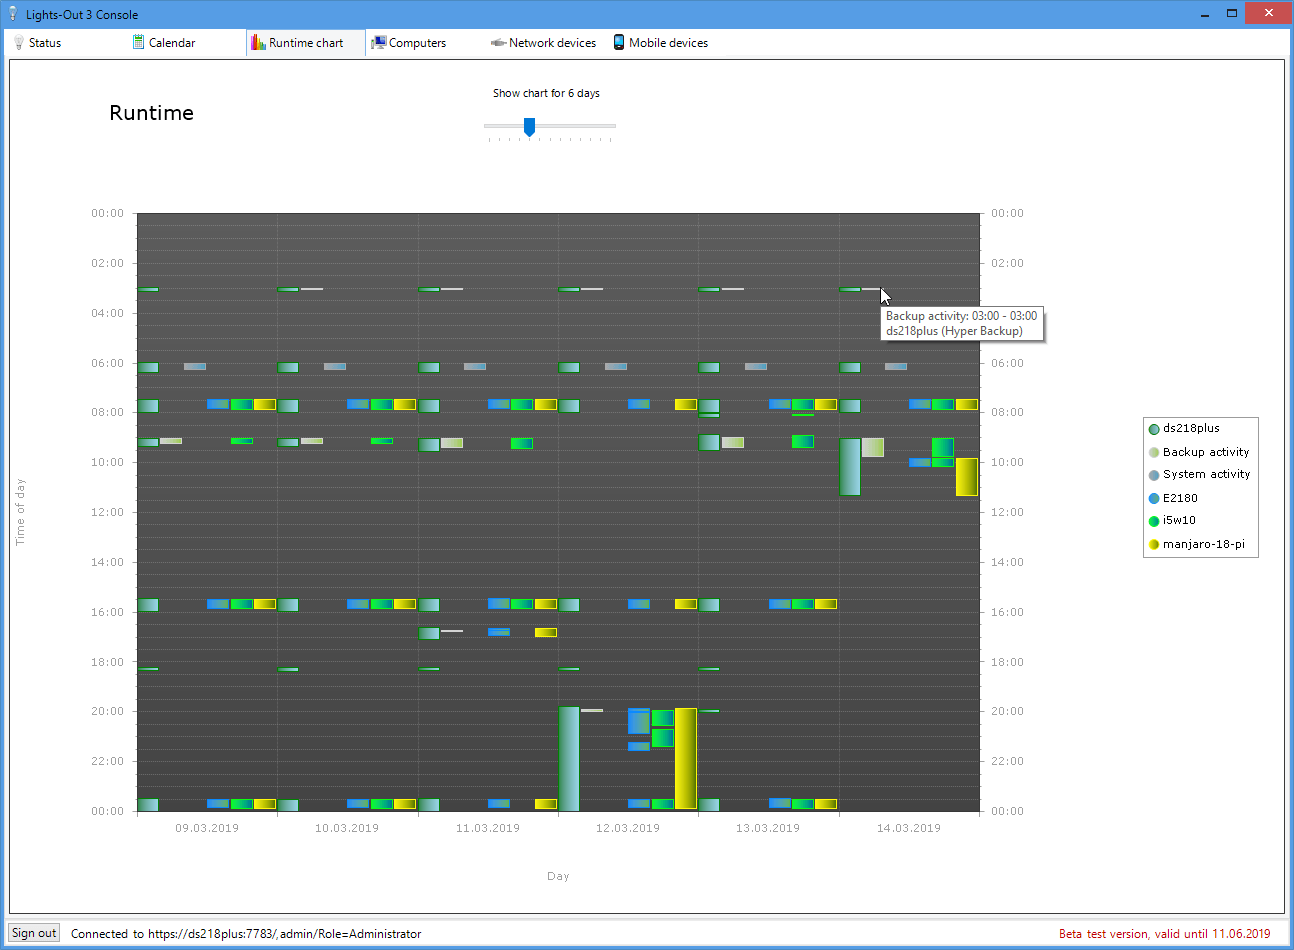 power management run-time chart